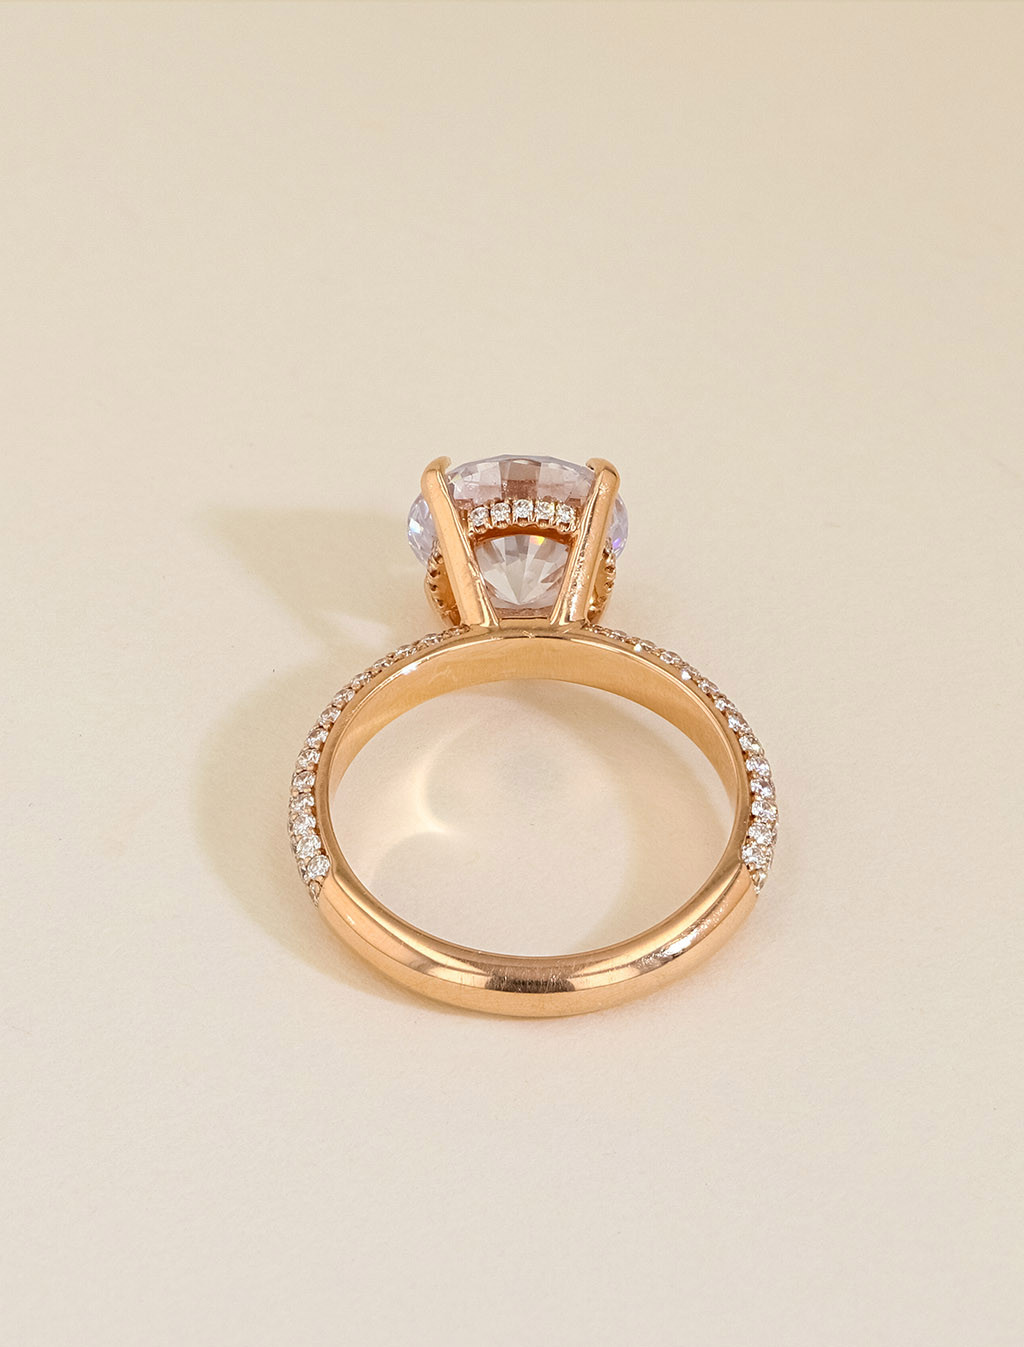 Michael M Round Domed Pavé Diamond Engagement Ring Setting back view